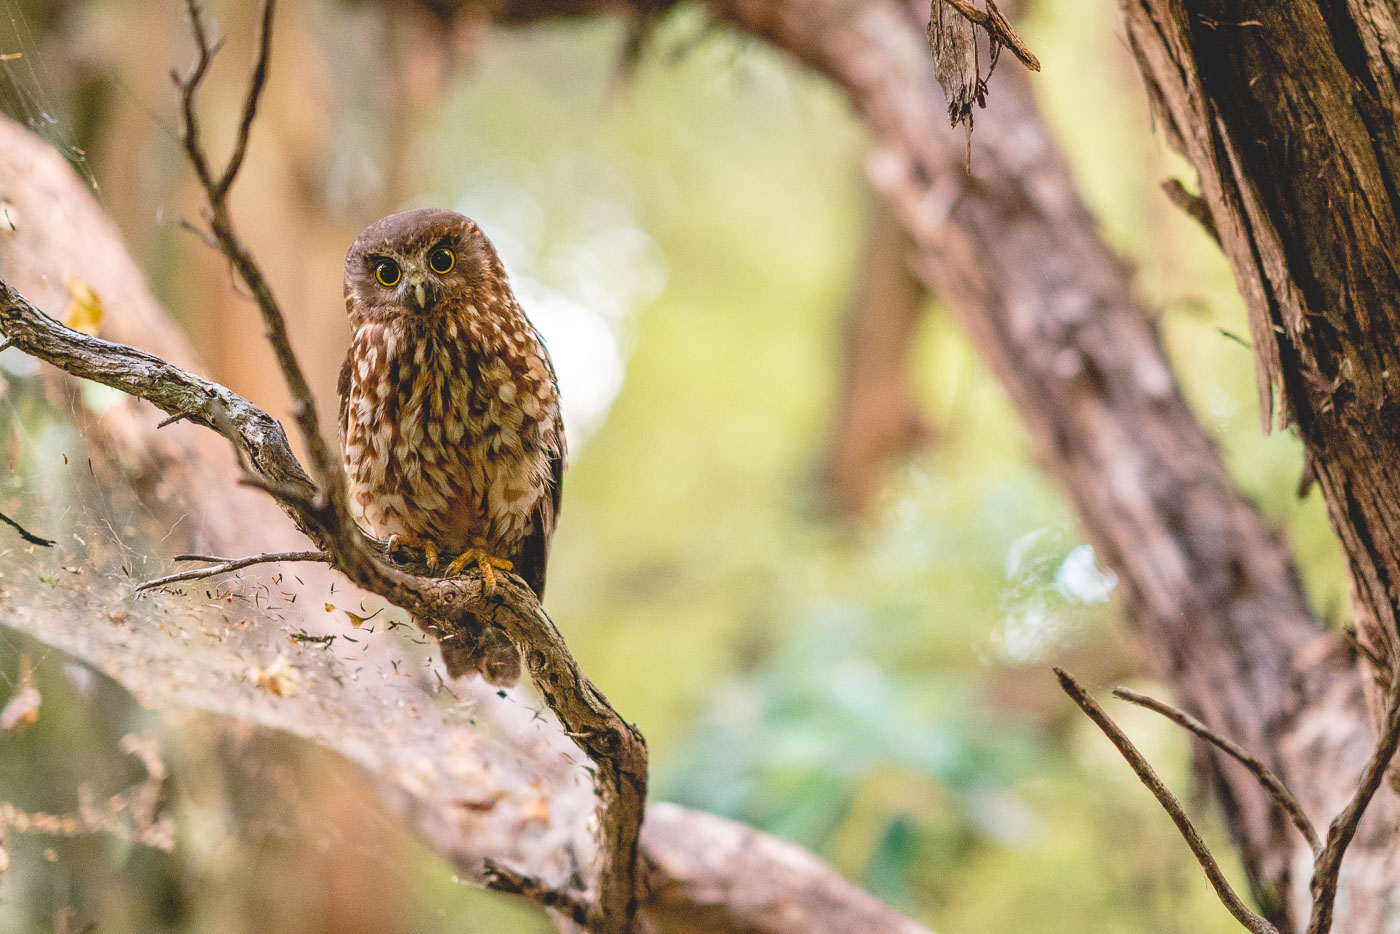 Friendly NZ native morepork in the bush at Great Barrier Island in New Zealand. Photo by Sony Ambassador Stefan Haworth